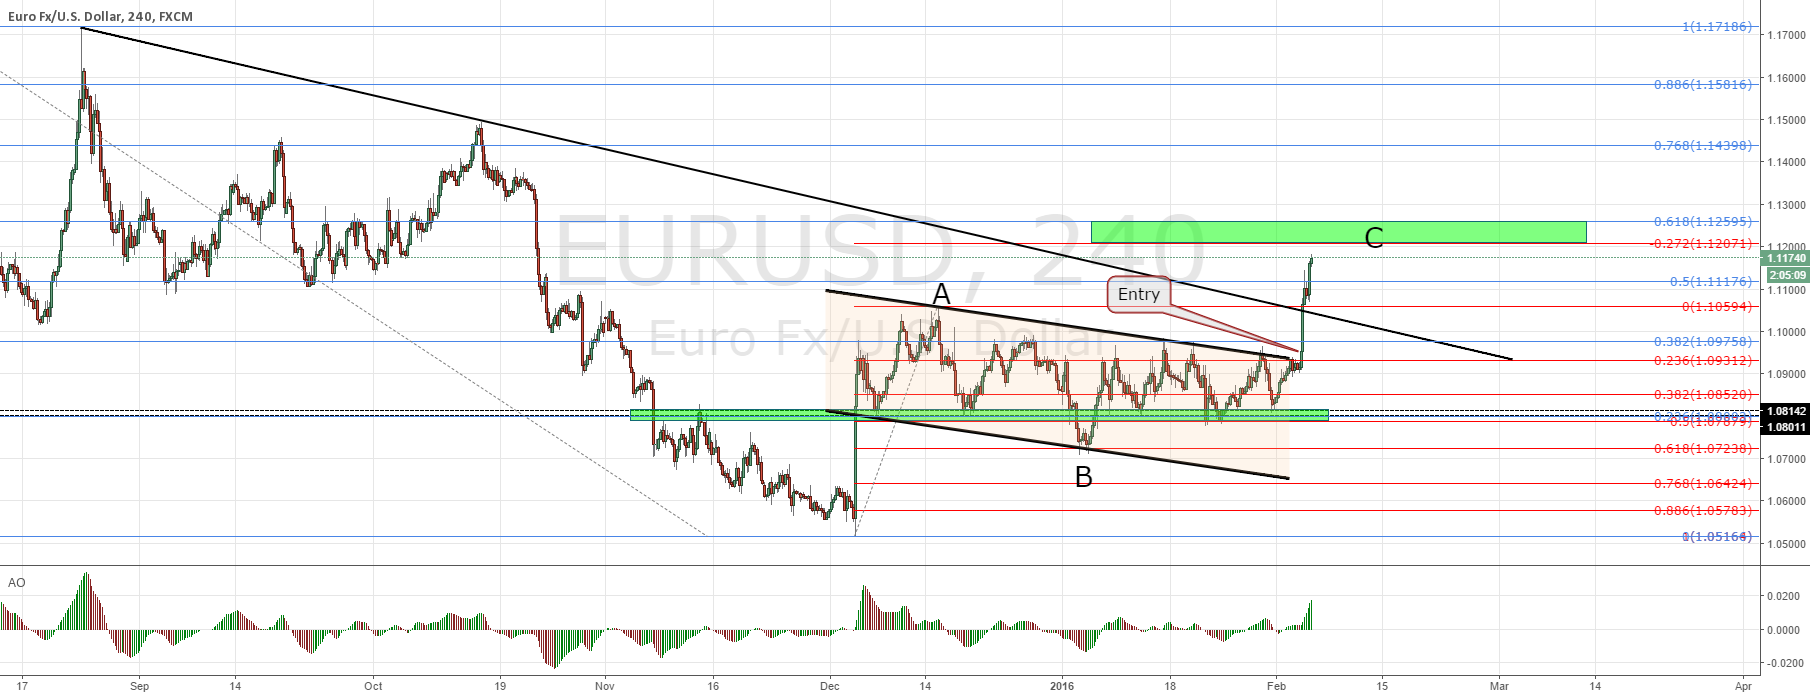 EURUSD closing in on target